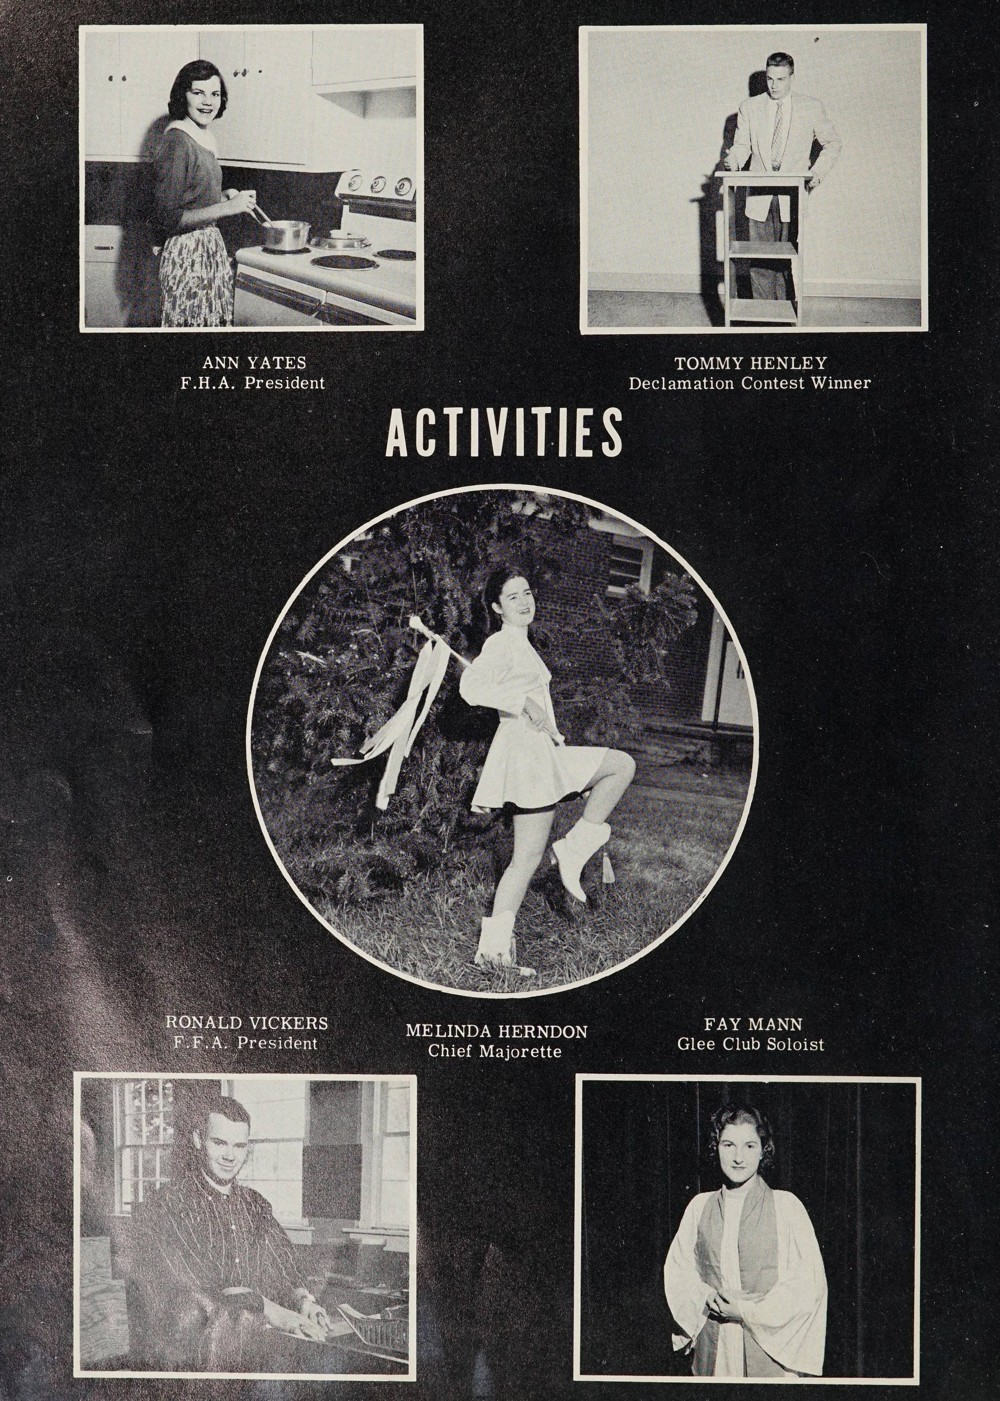 Activity page showing the F.H.A. President, Declamation Contest Winner, Chief Majorette, Glee Club Soloist, and F.F.A. President.